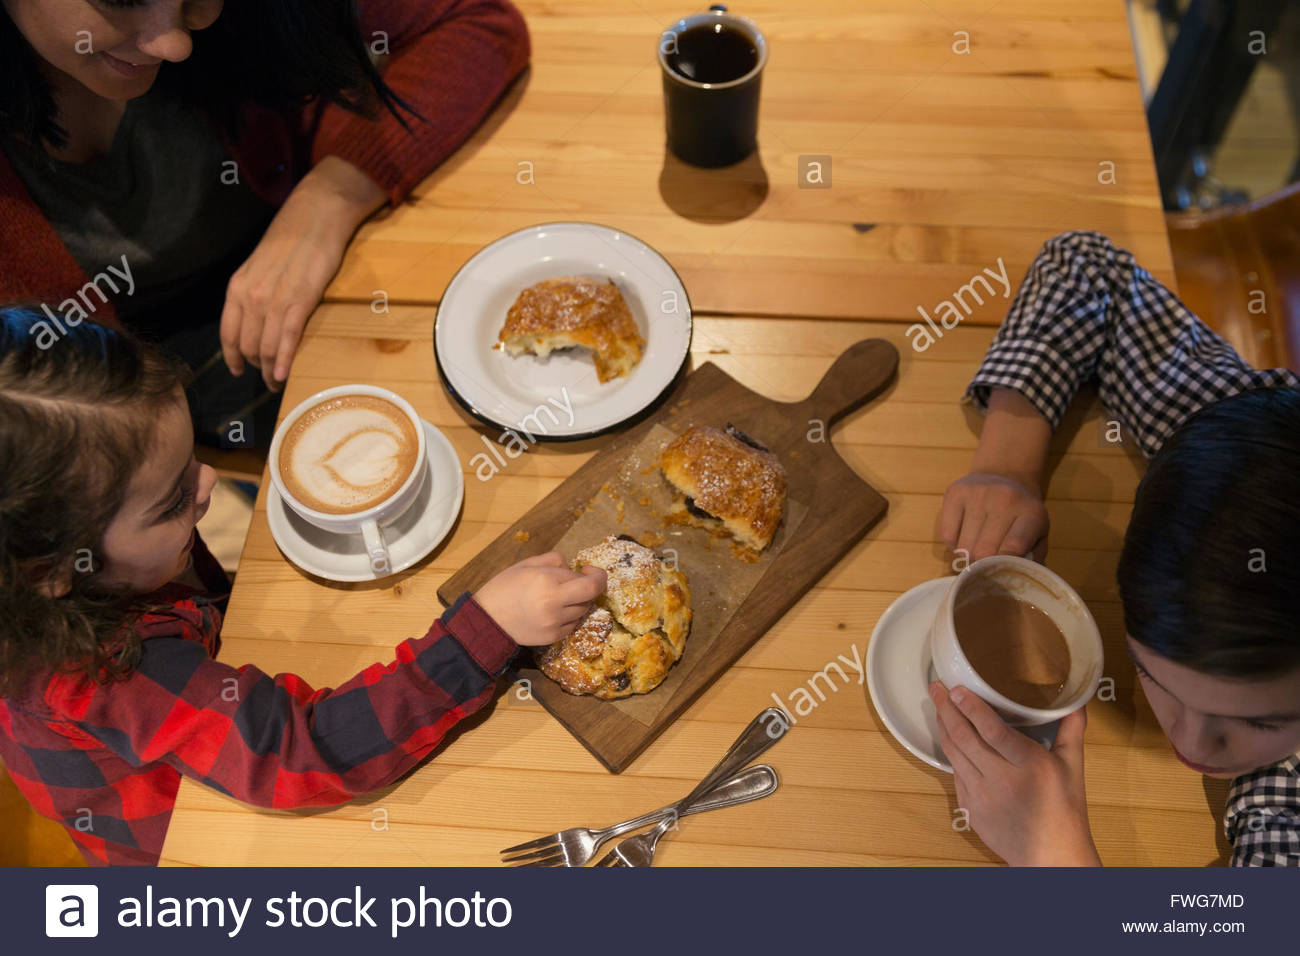 Family enjoying coffee and pastries in bakery - Stock Image